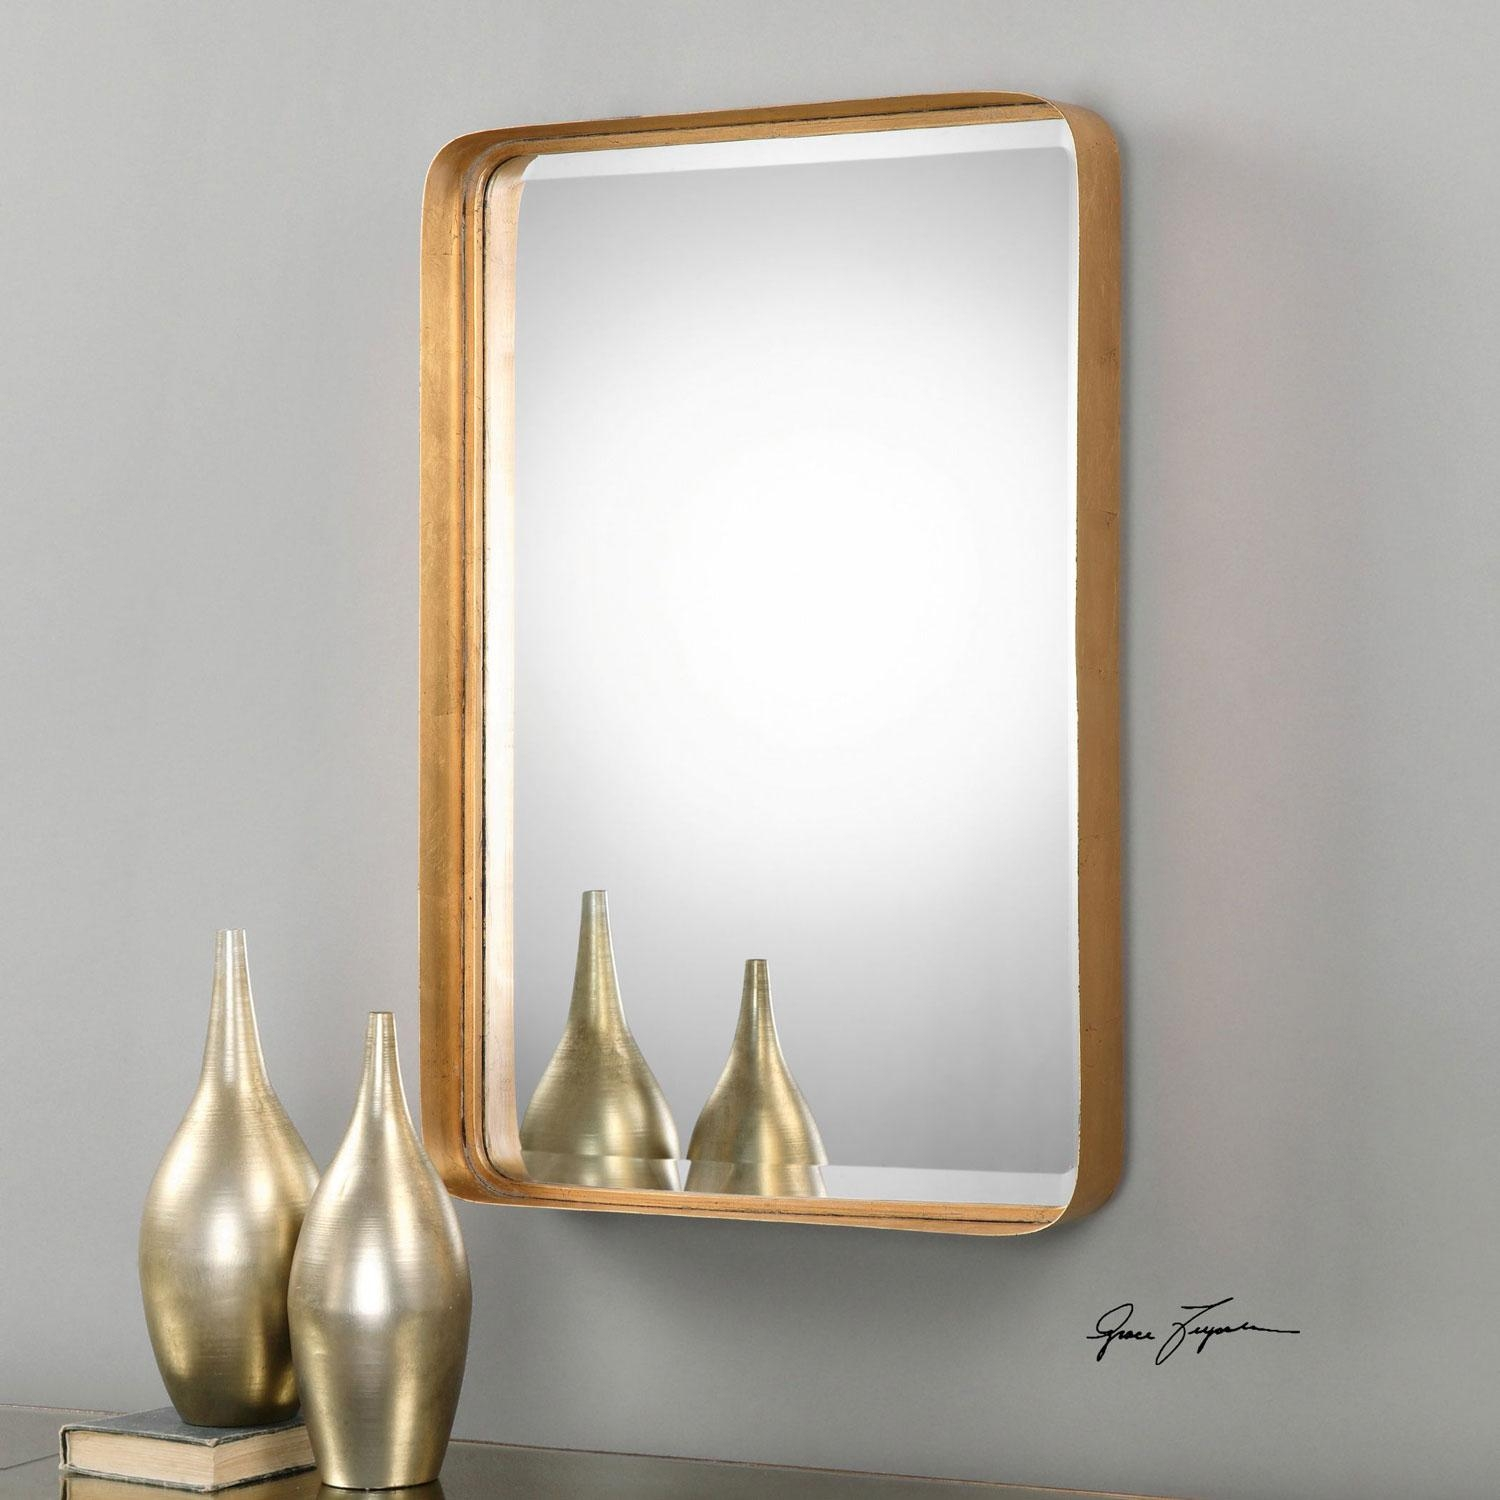 Crofton Antique Gold Mirror Uttermost Wall Mirror Mirrors Home Decor With Regard To Gold Antique Mirror (Image 9 of 20)